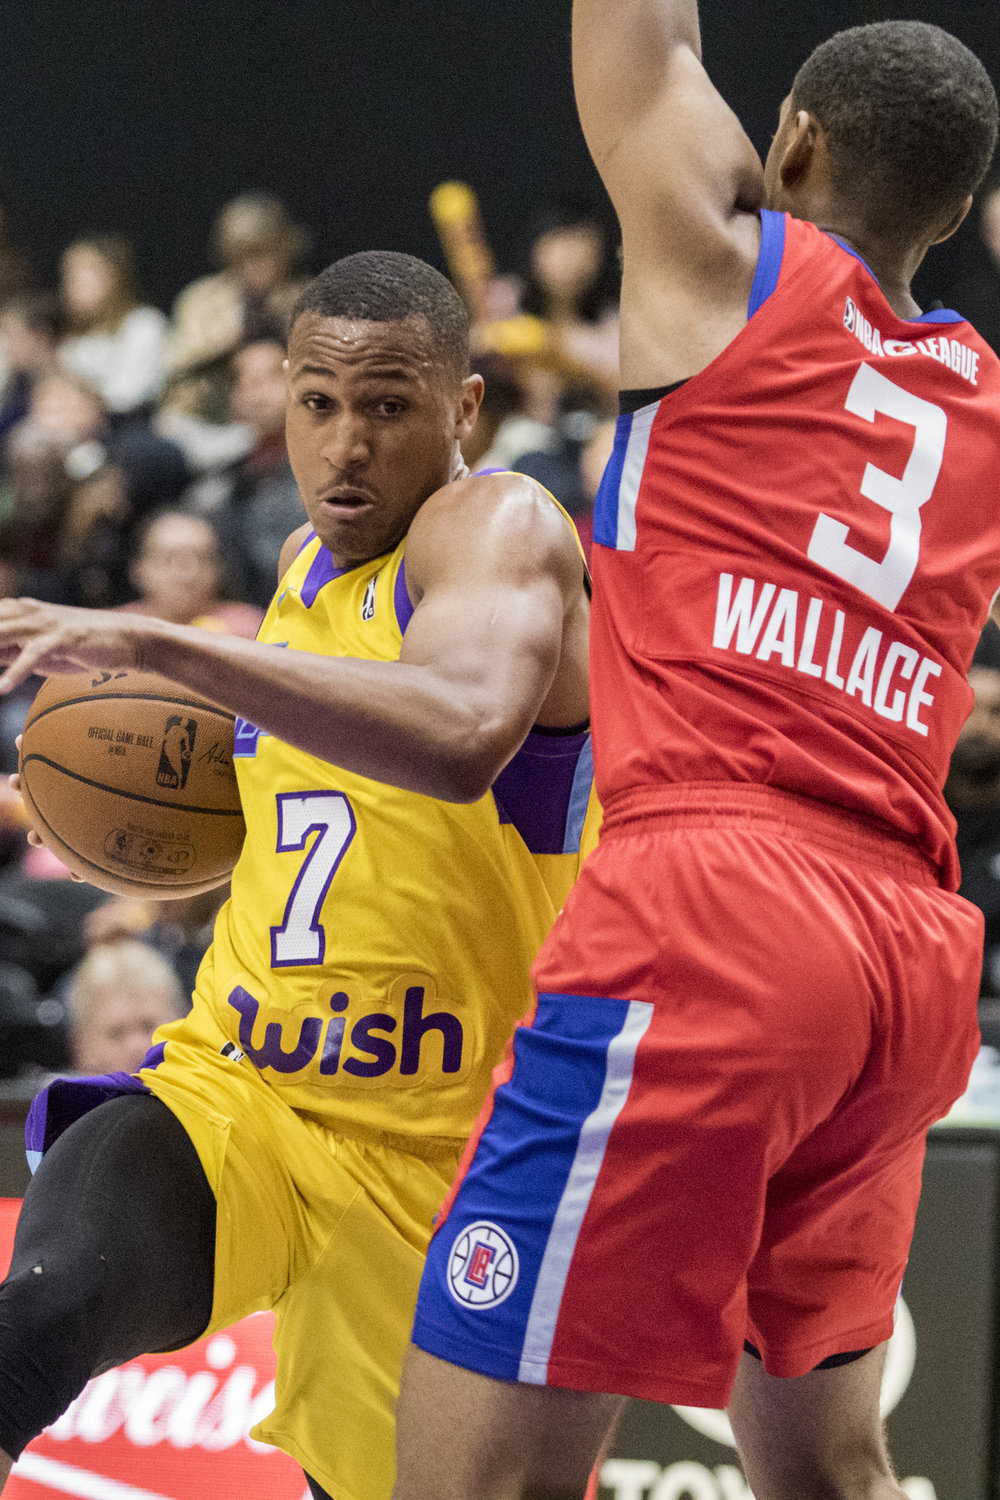 South Bay Lakers guard Demarcus Holland (7, left) drives by Agua Caliente Clippers guard Tyrone Wallace (3, right) during their Gatorade League game on March 16, 2017 at the UCLA Health Stadium in El Segundo, California. The Lakers won 108-104. (Zane Meyer-Thornton/Corsair Photo)